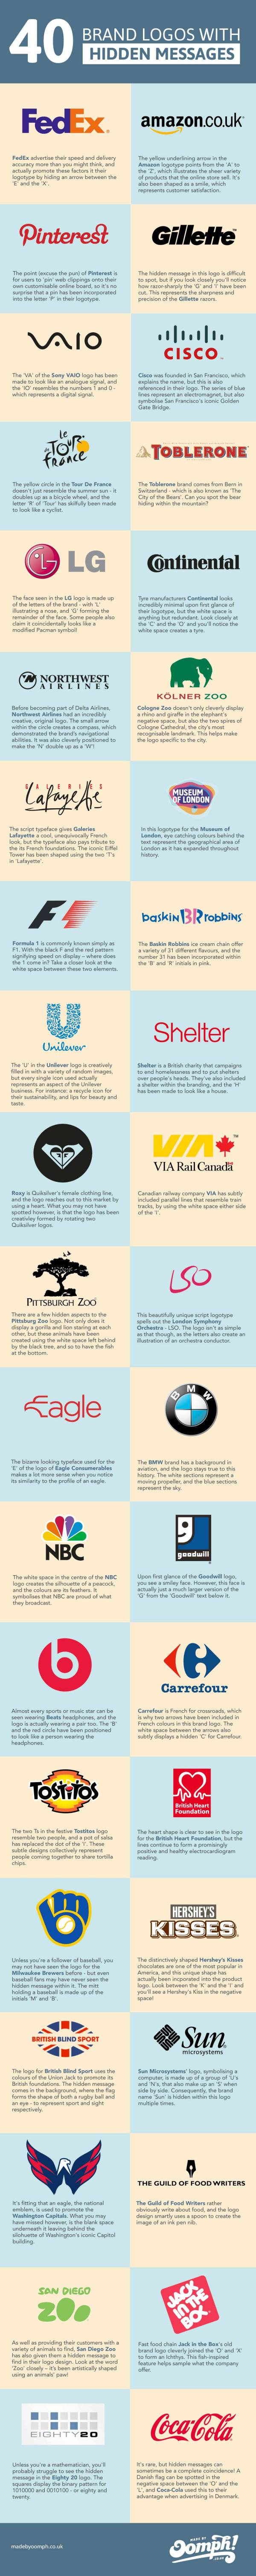 40 Brand Logos with Hidden Messages infographic